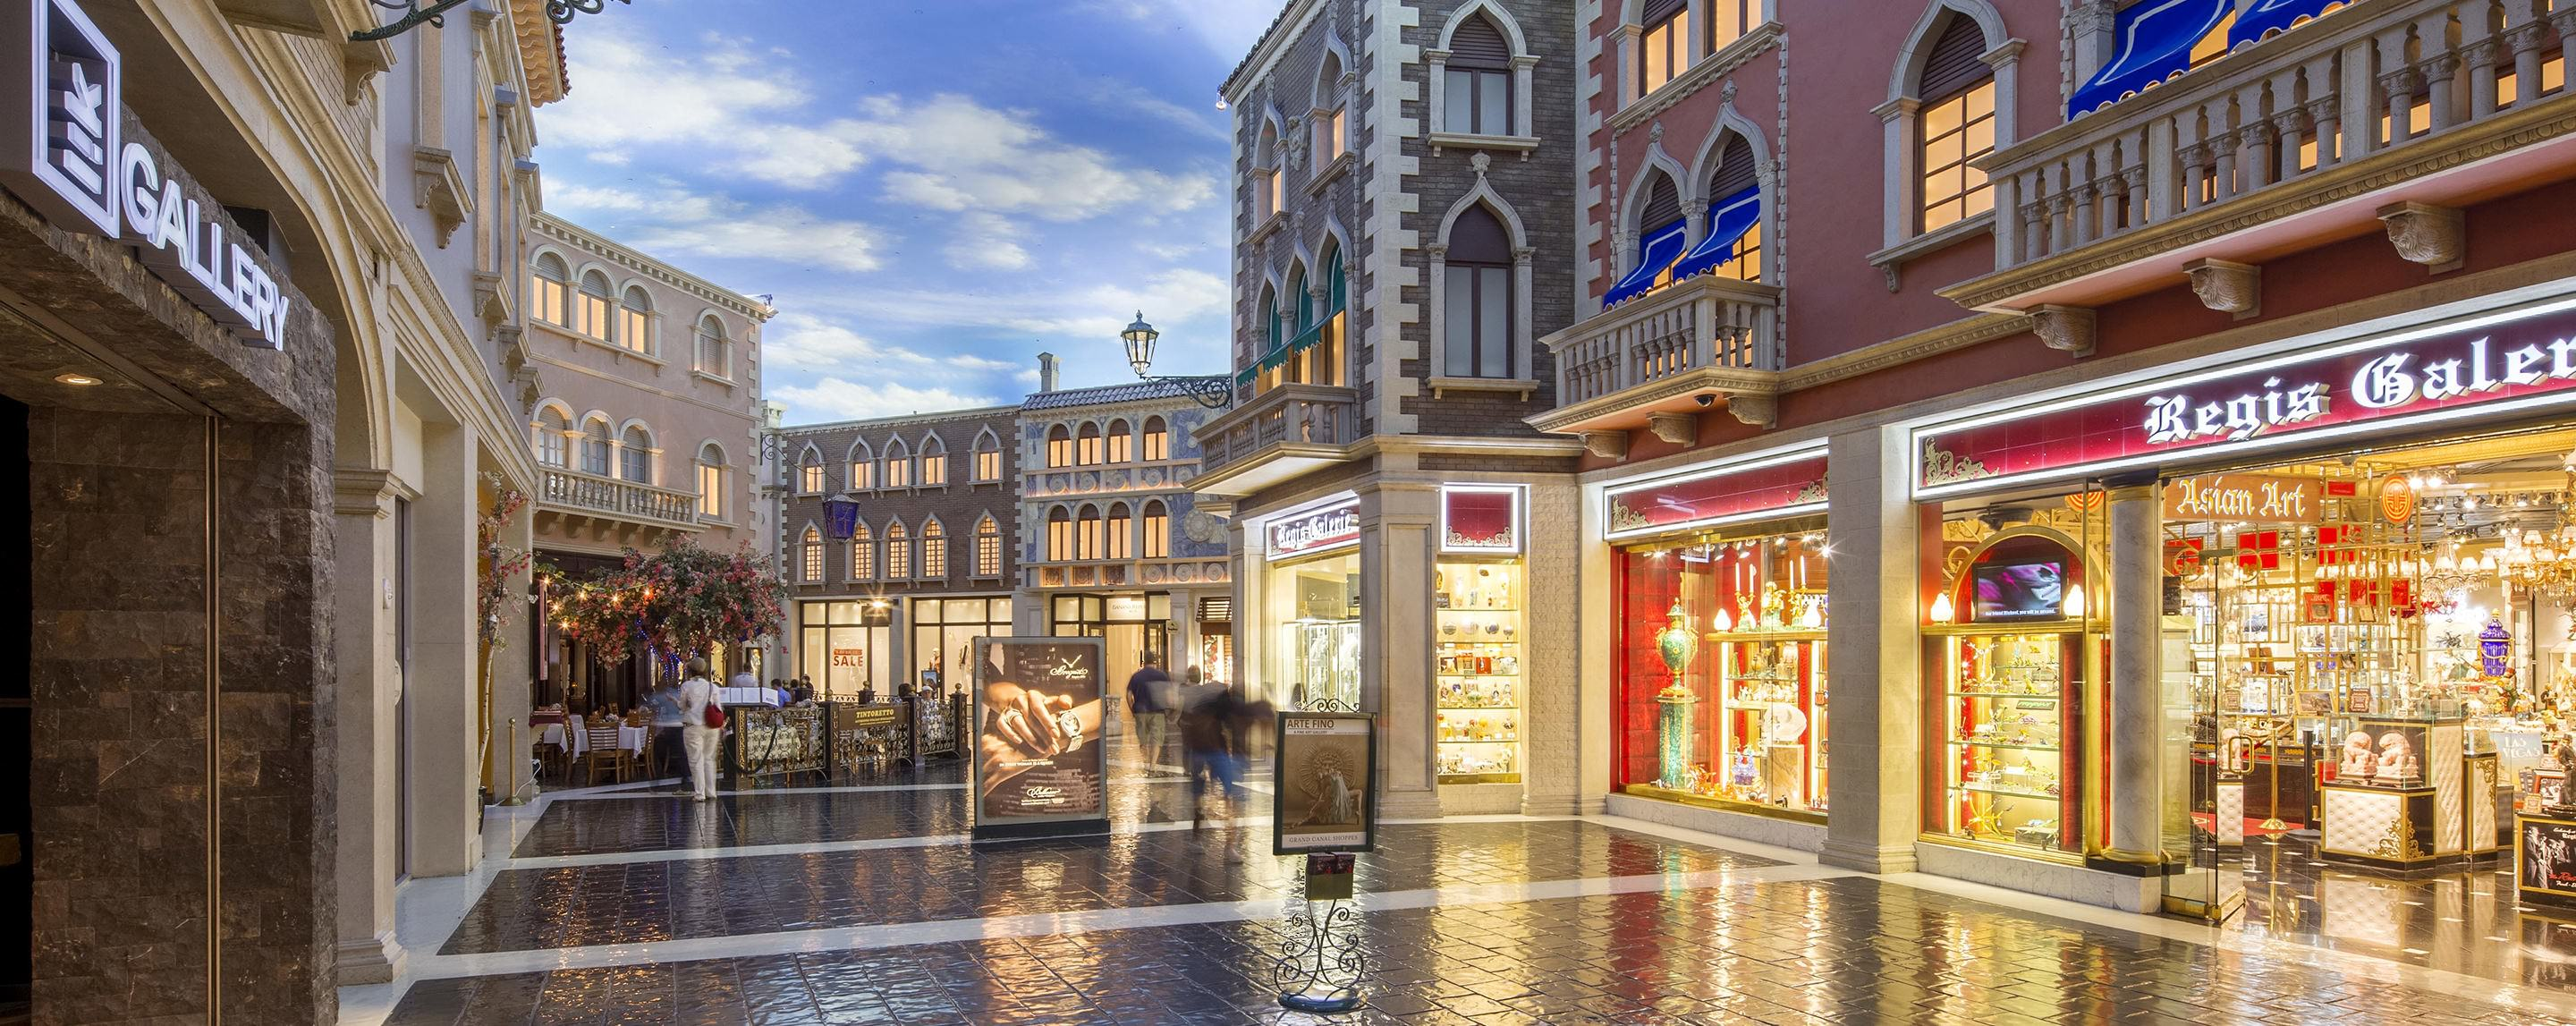 The interior of the Grand Canal Shoppes is designed to look like a replica of a small Venetian town.